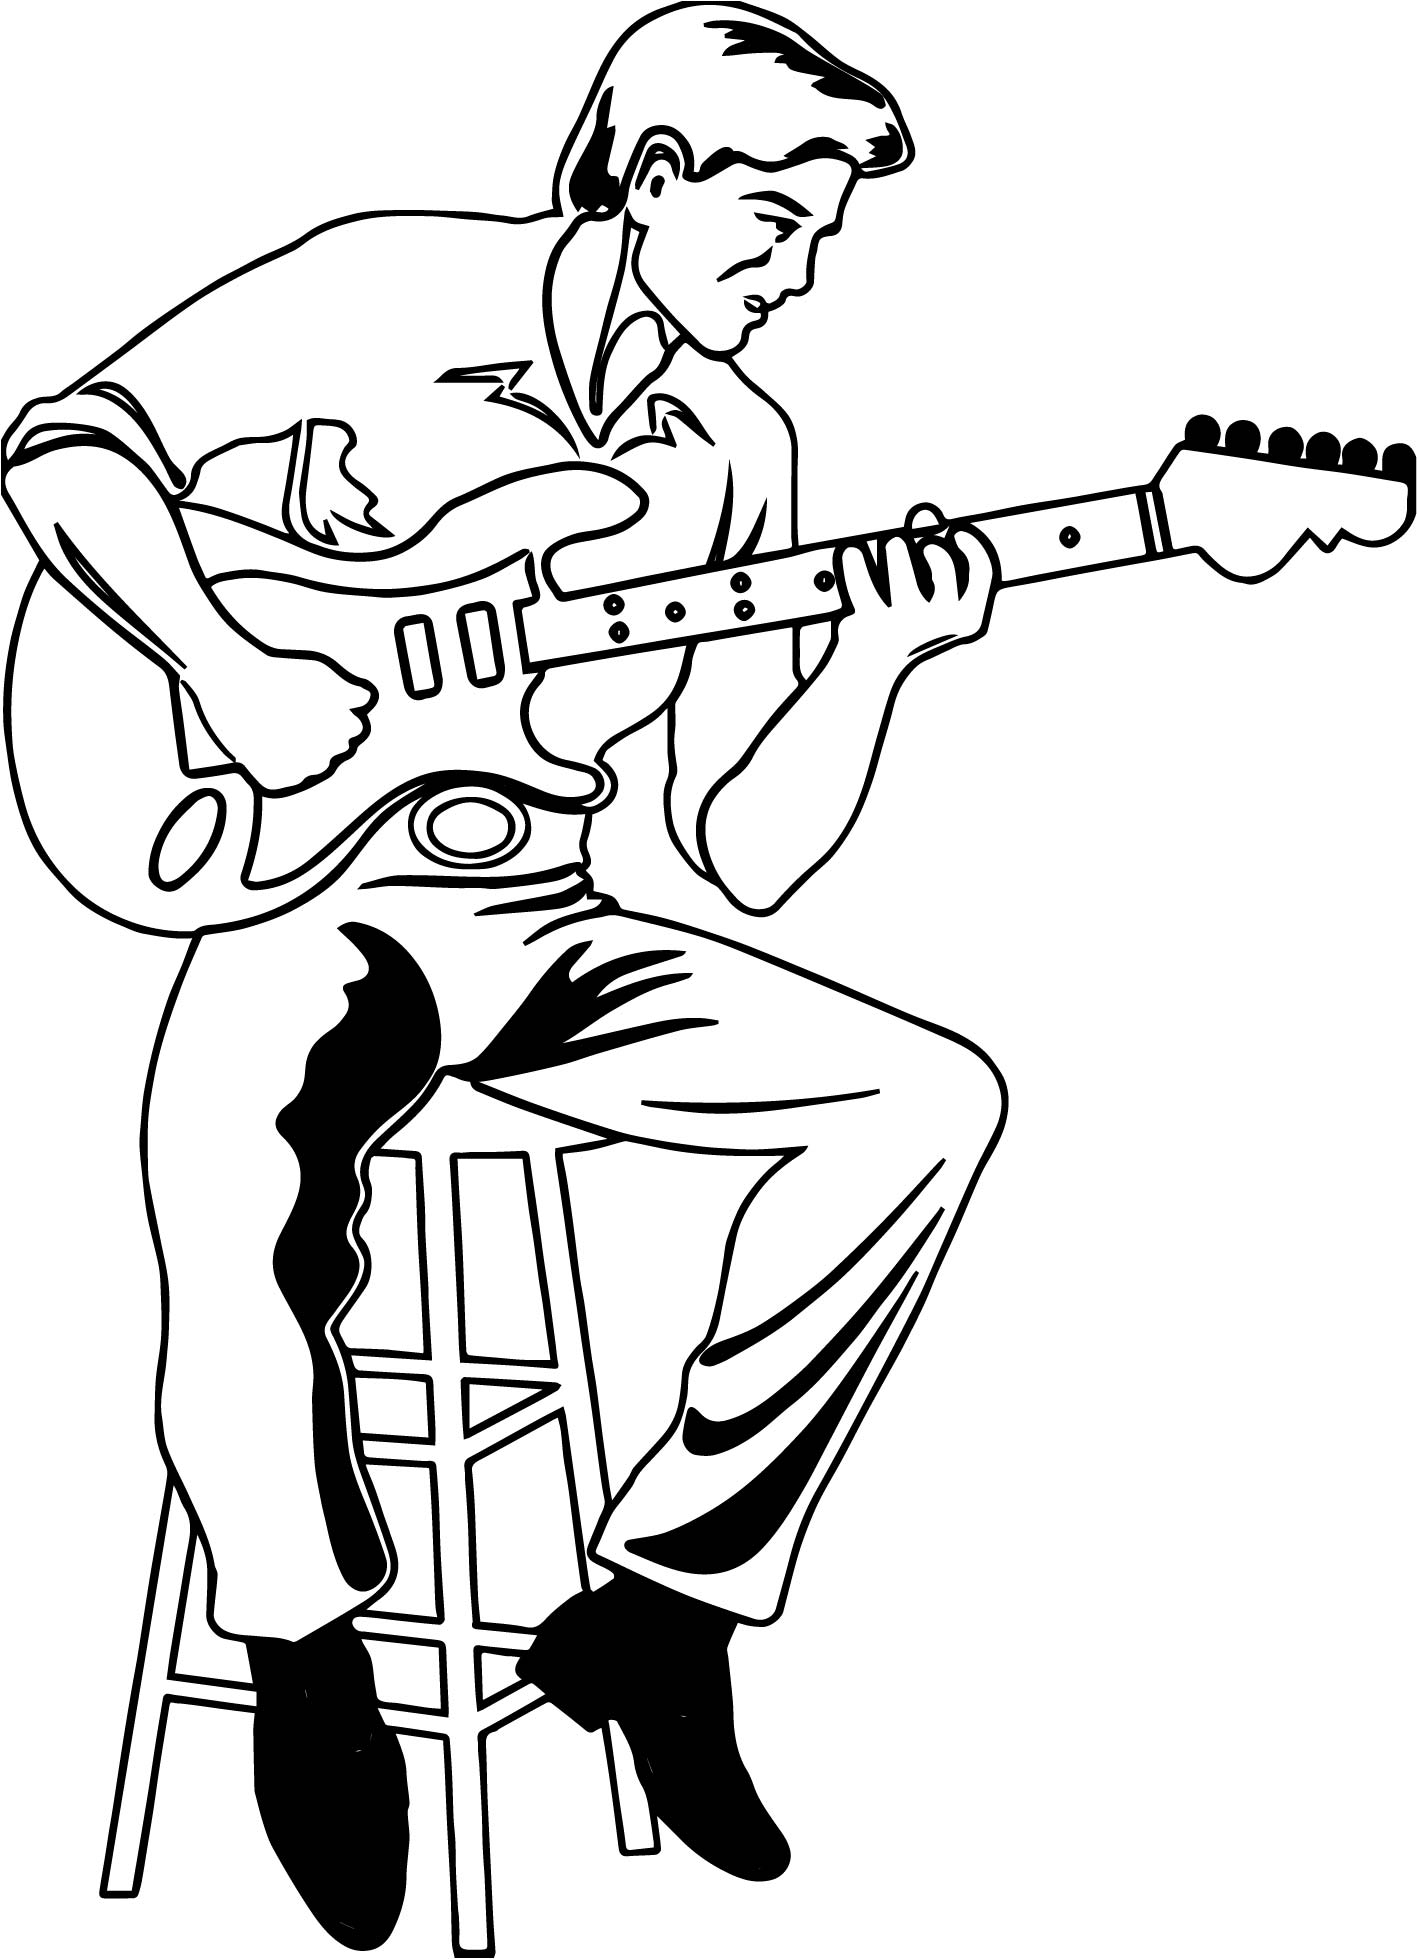 Illustration Of A Man Playing An Electric Playing The